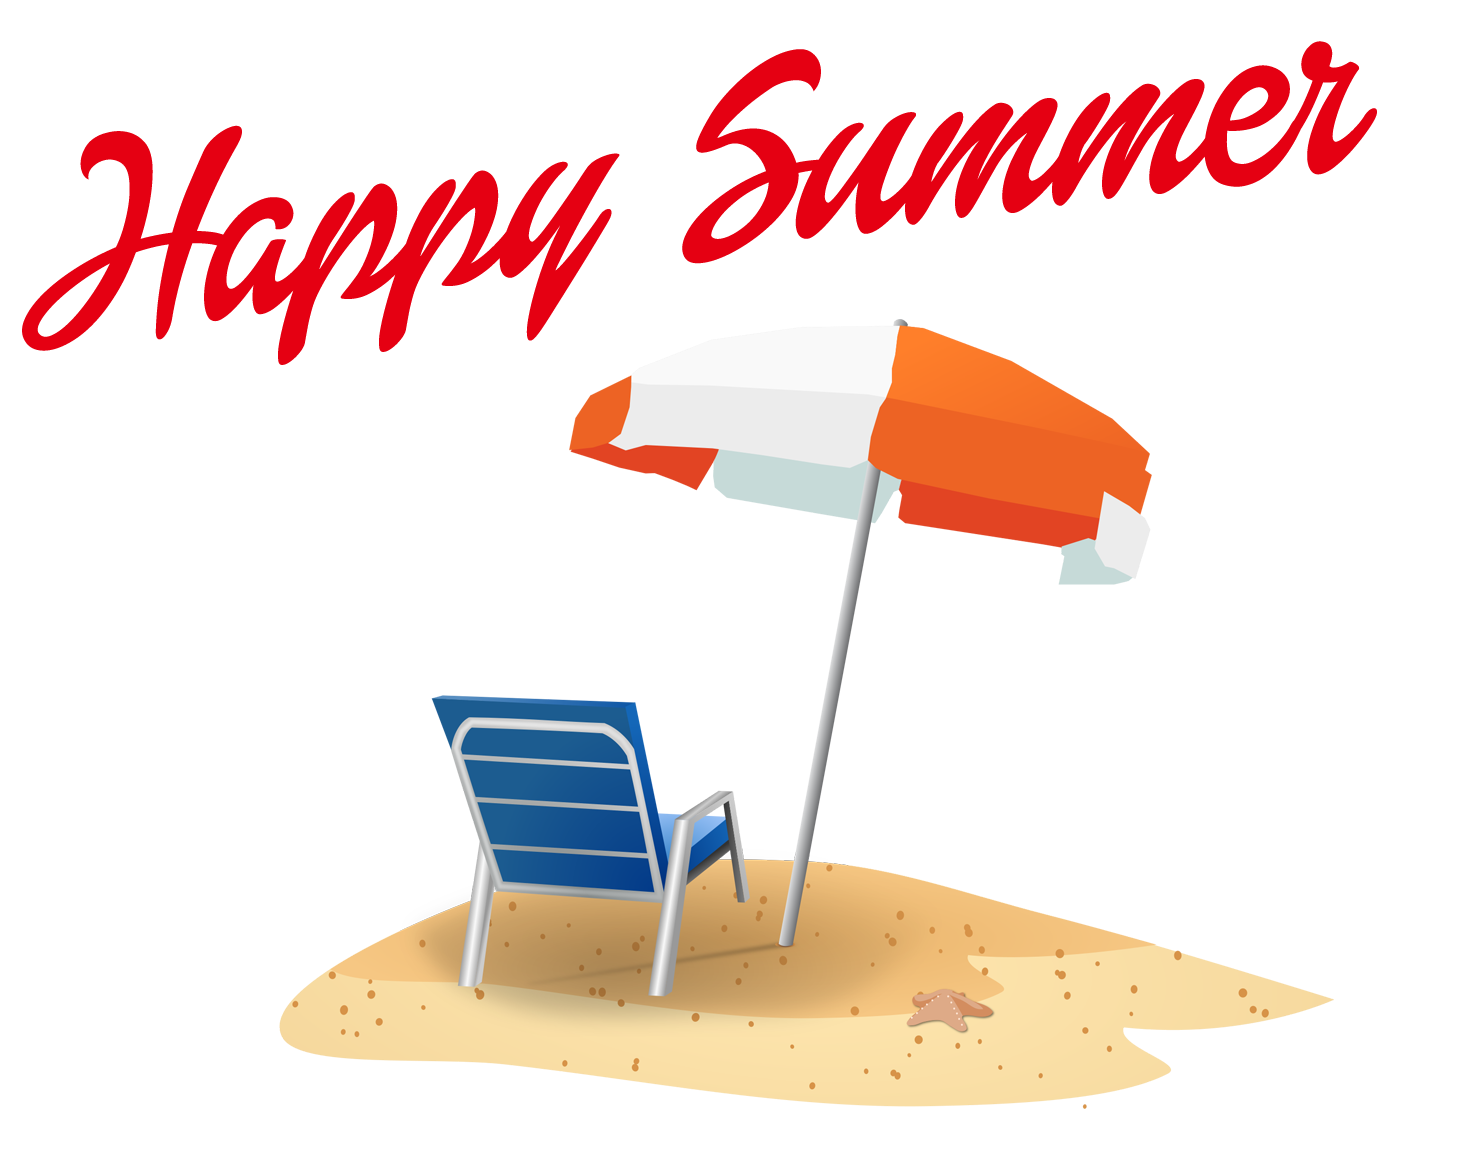 Png names. Country clipart summer